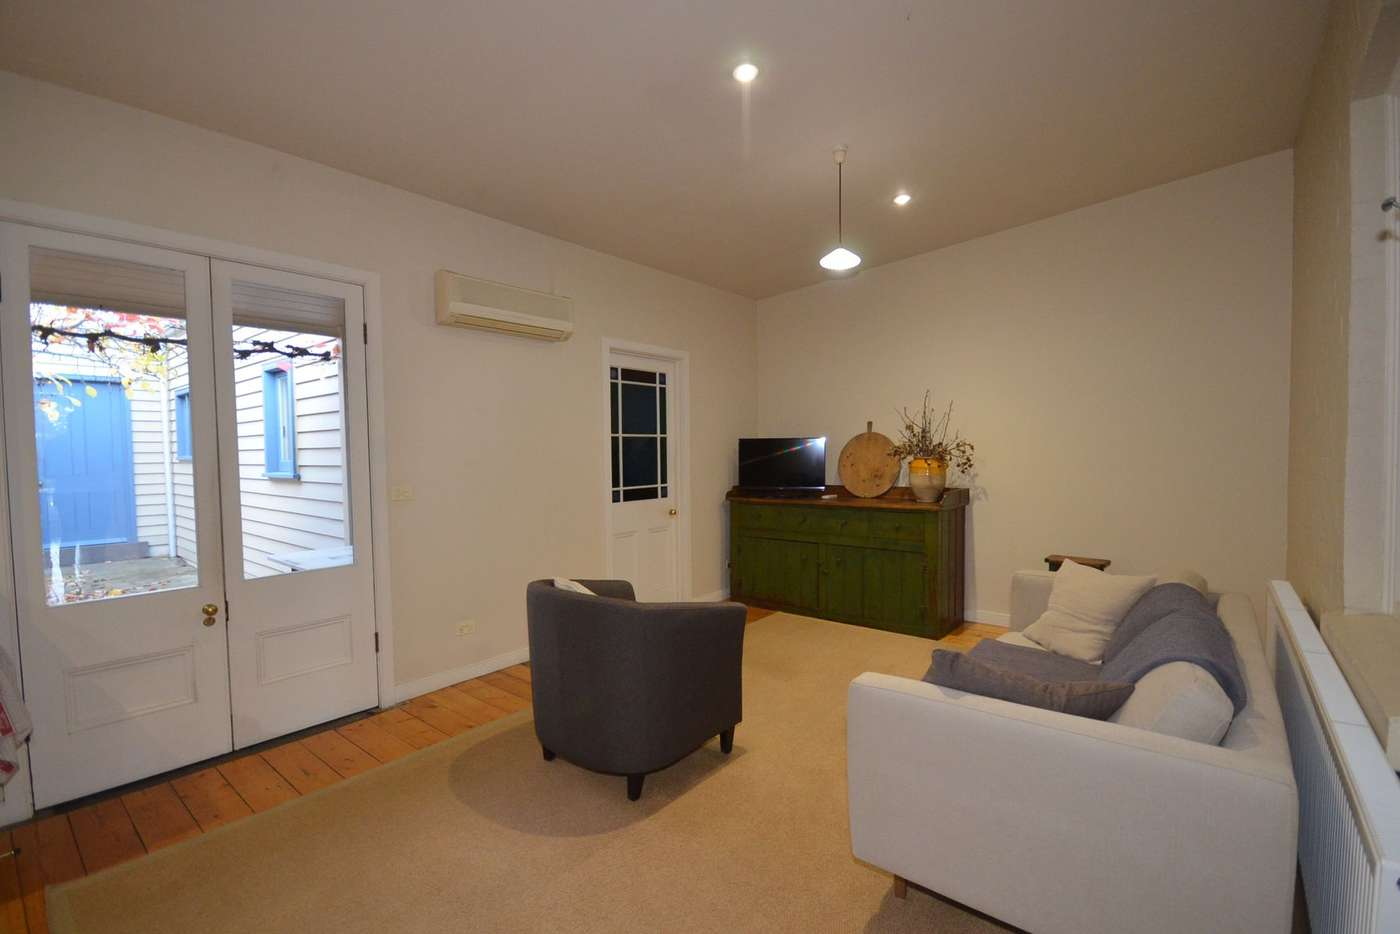 Sixth view of Homely house listing, 158 Mitchell Street, Bendigo VIC 3550